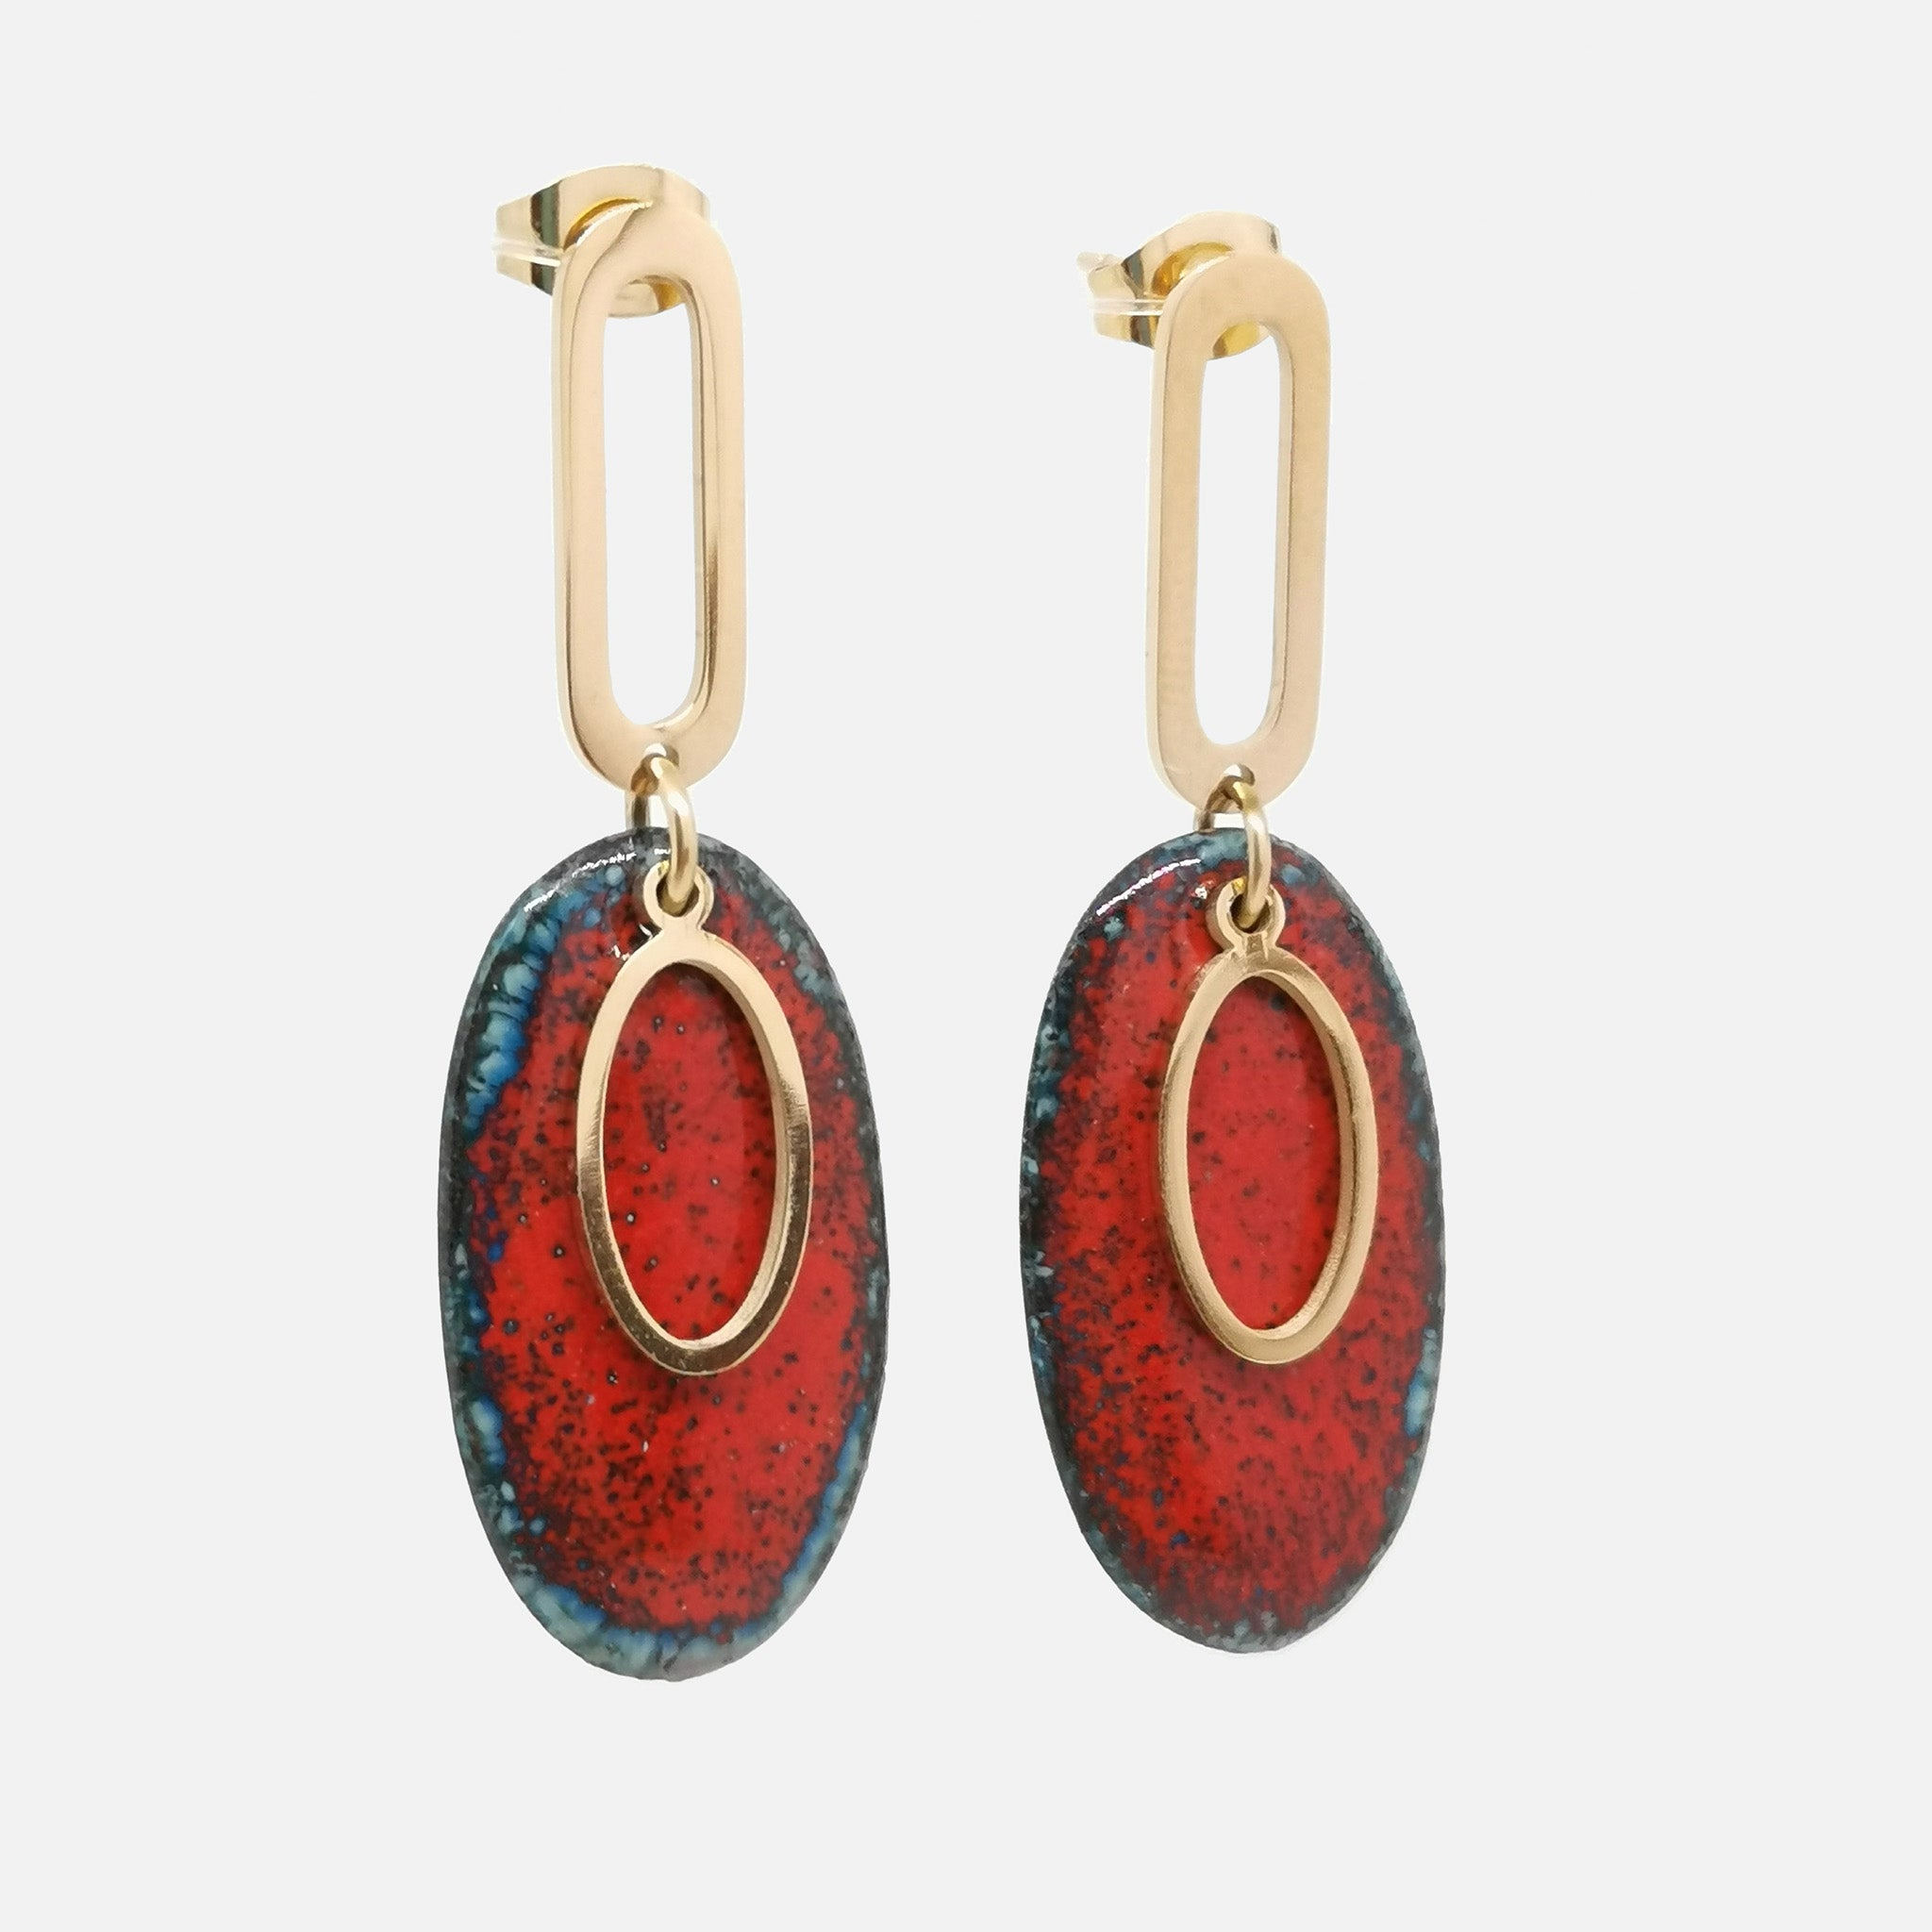 Boucles d'oreilles Elise - Collection Magma